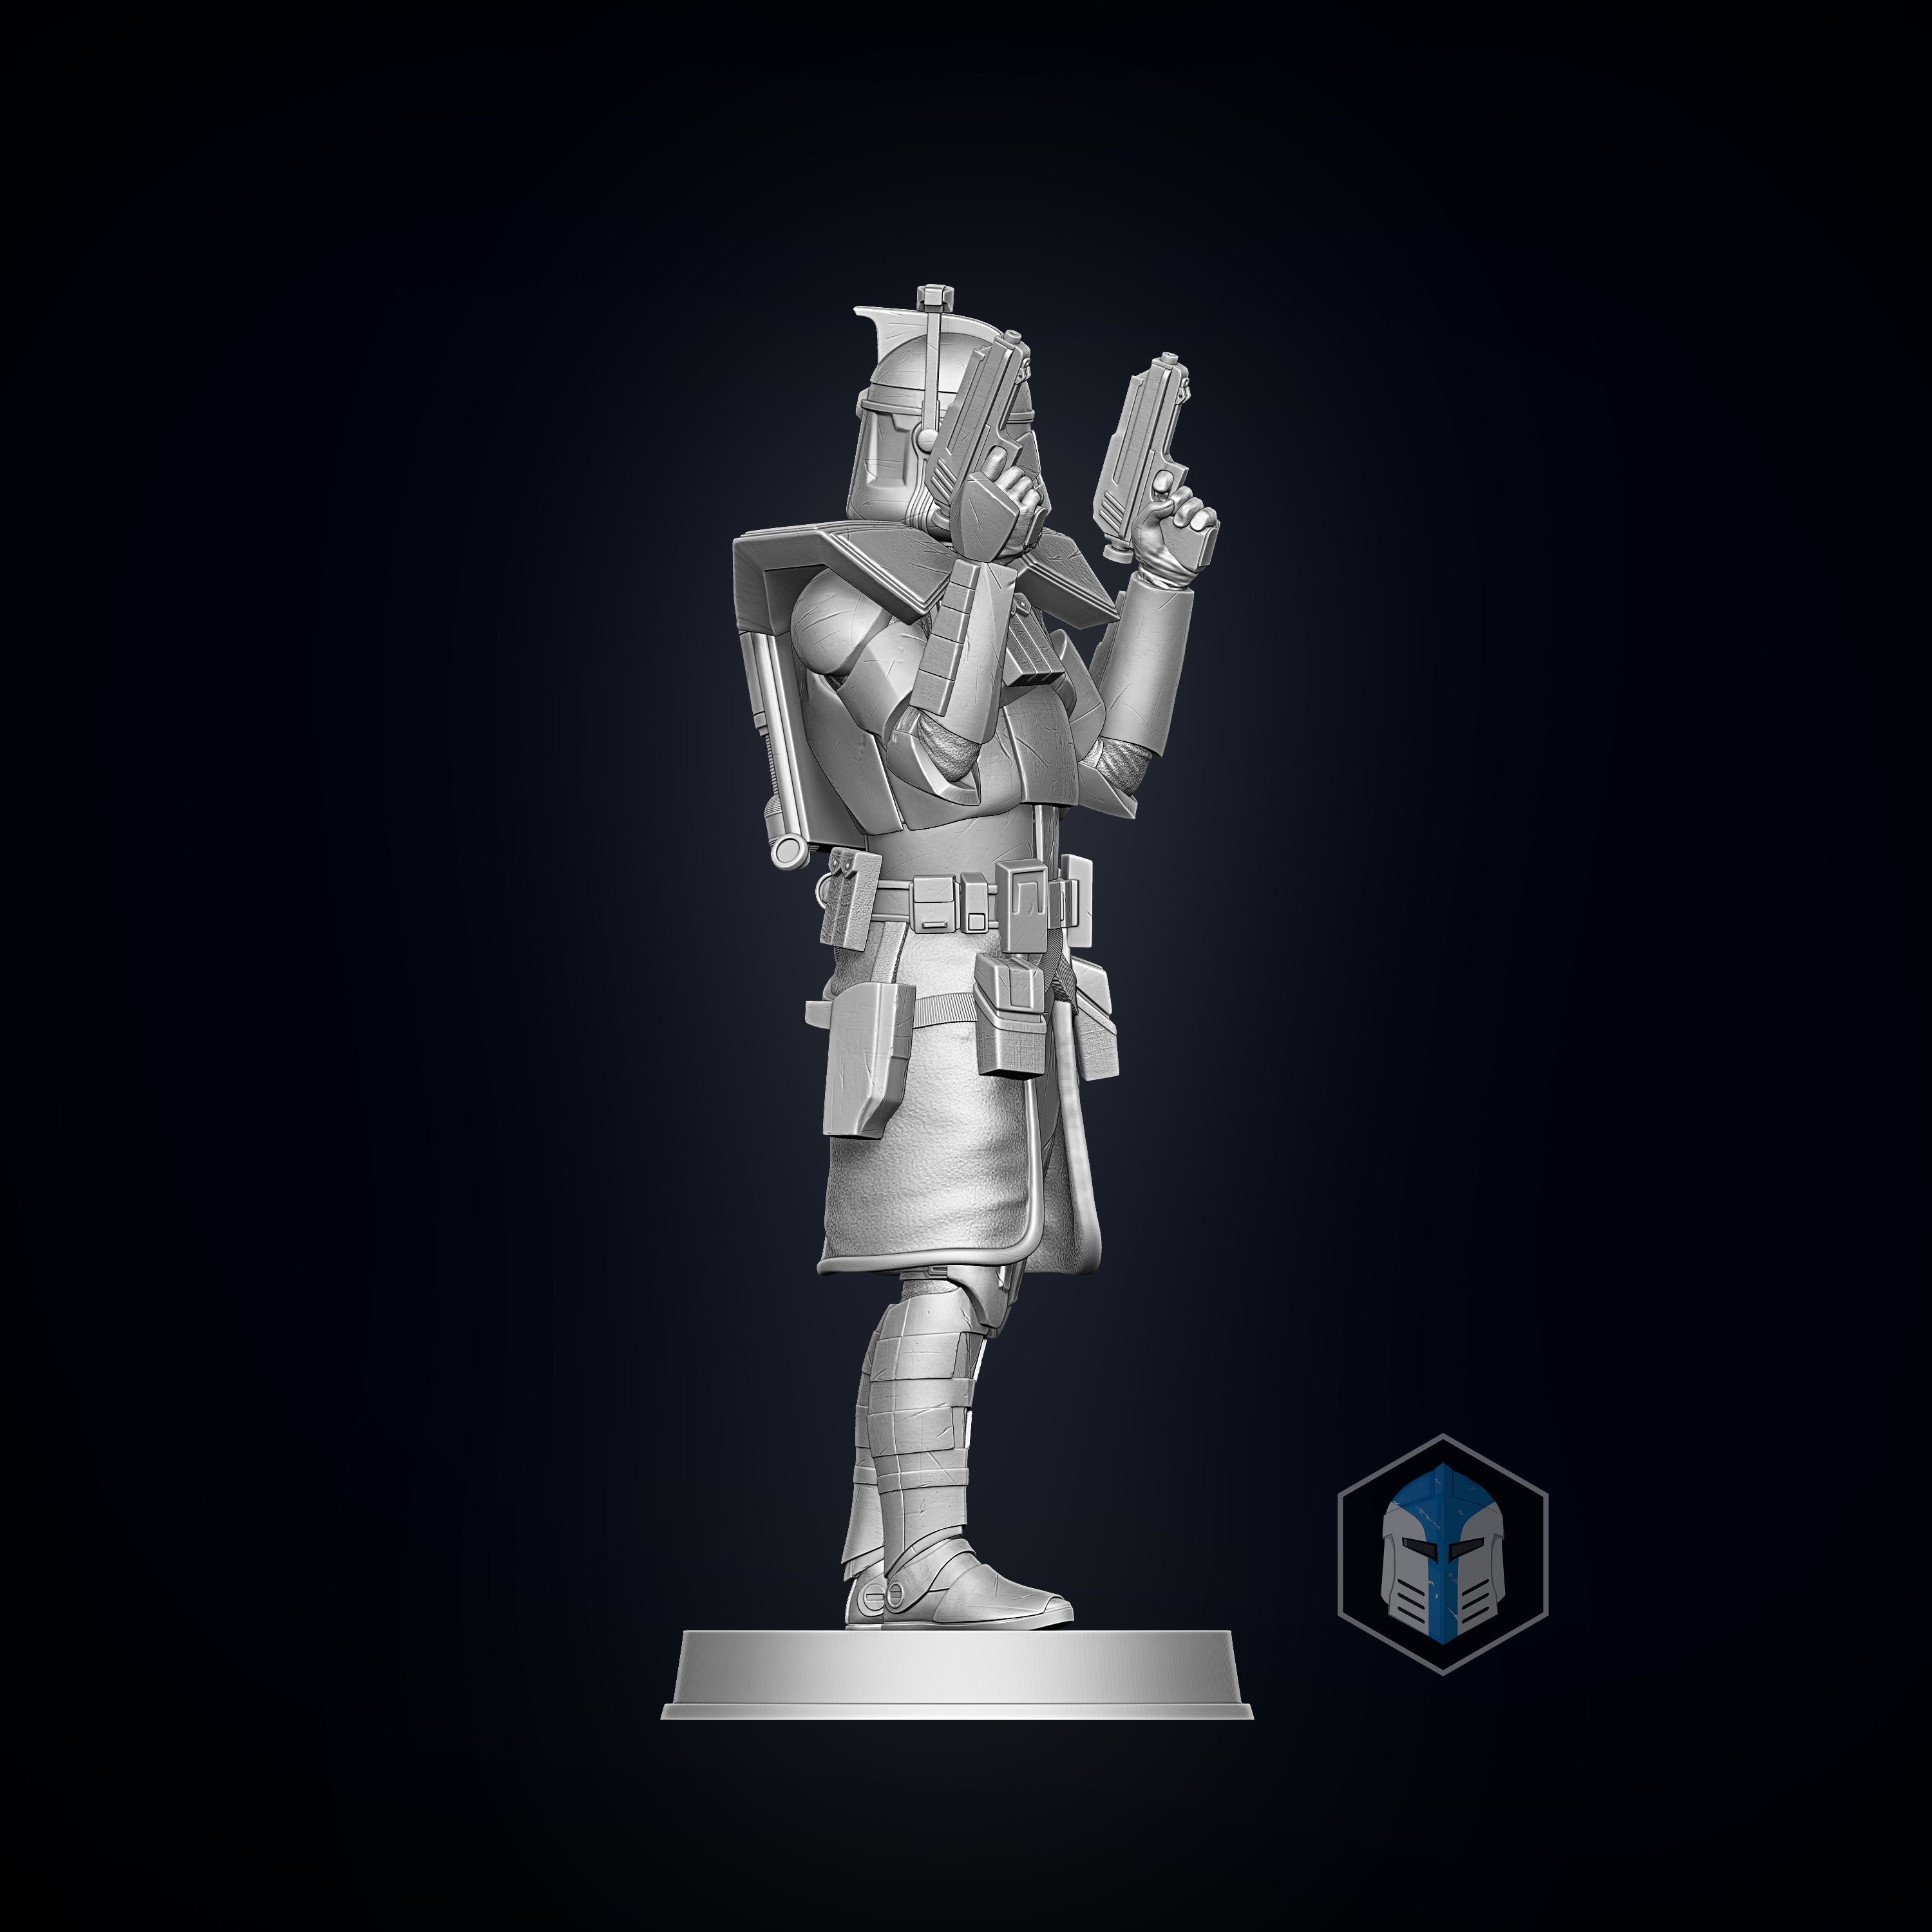 ARC Trooper Figurine - Pose 1 - 3D Print Files - Galactic Armory